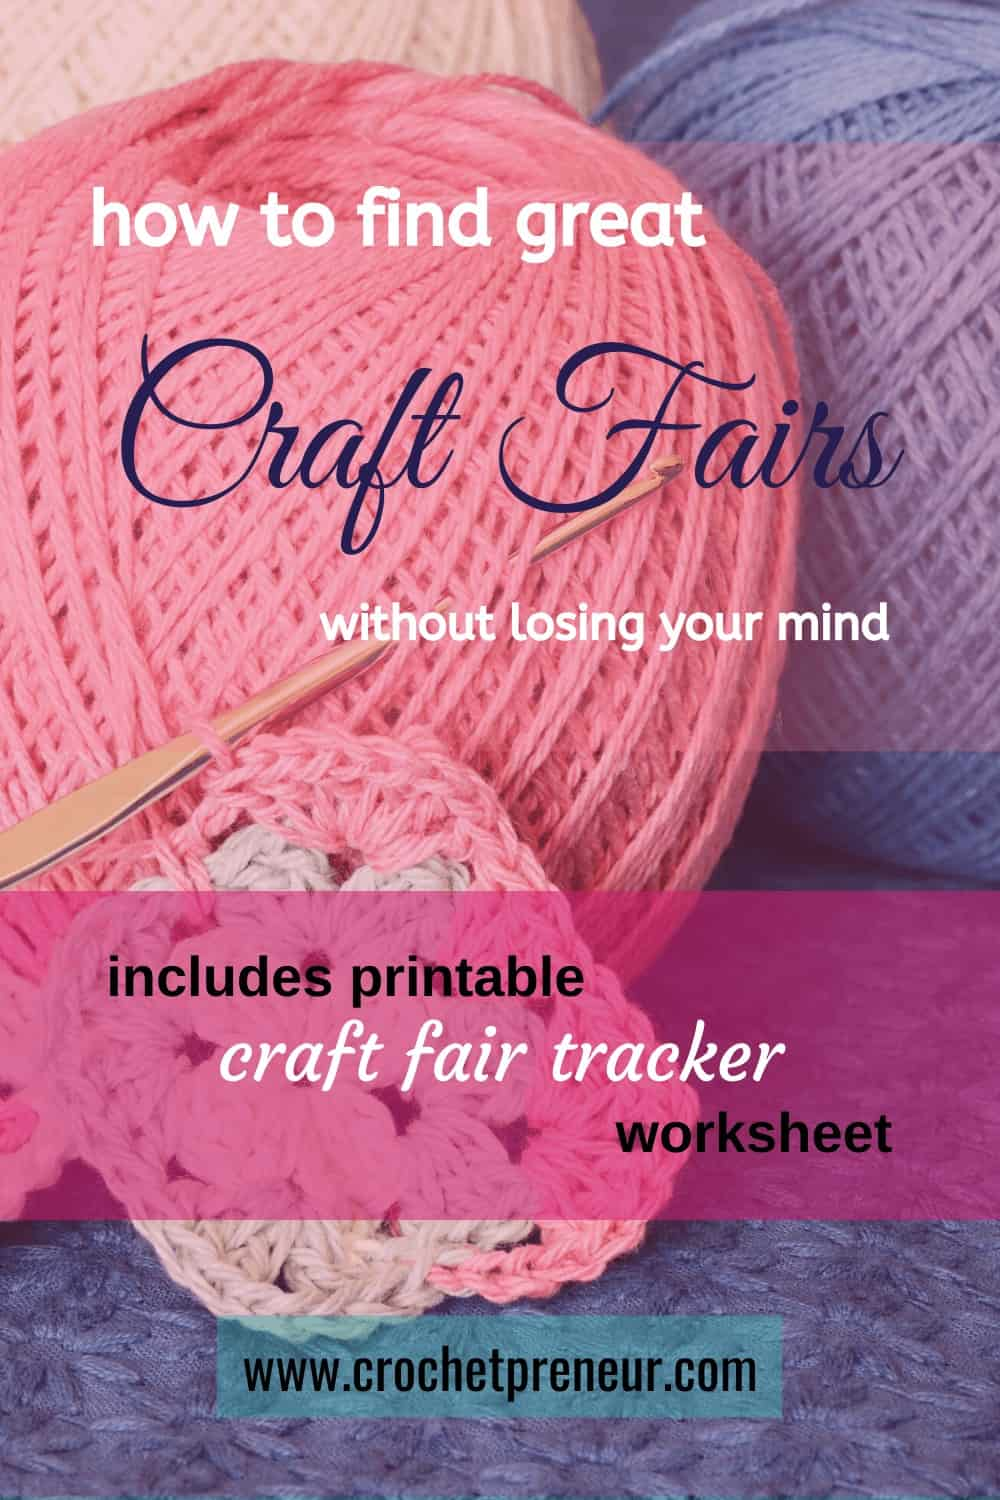 Pinterest graphic for How to Find Great Craft Fairs without losing your mind includes printable Craft Fair Tracker worksheet